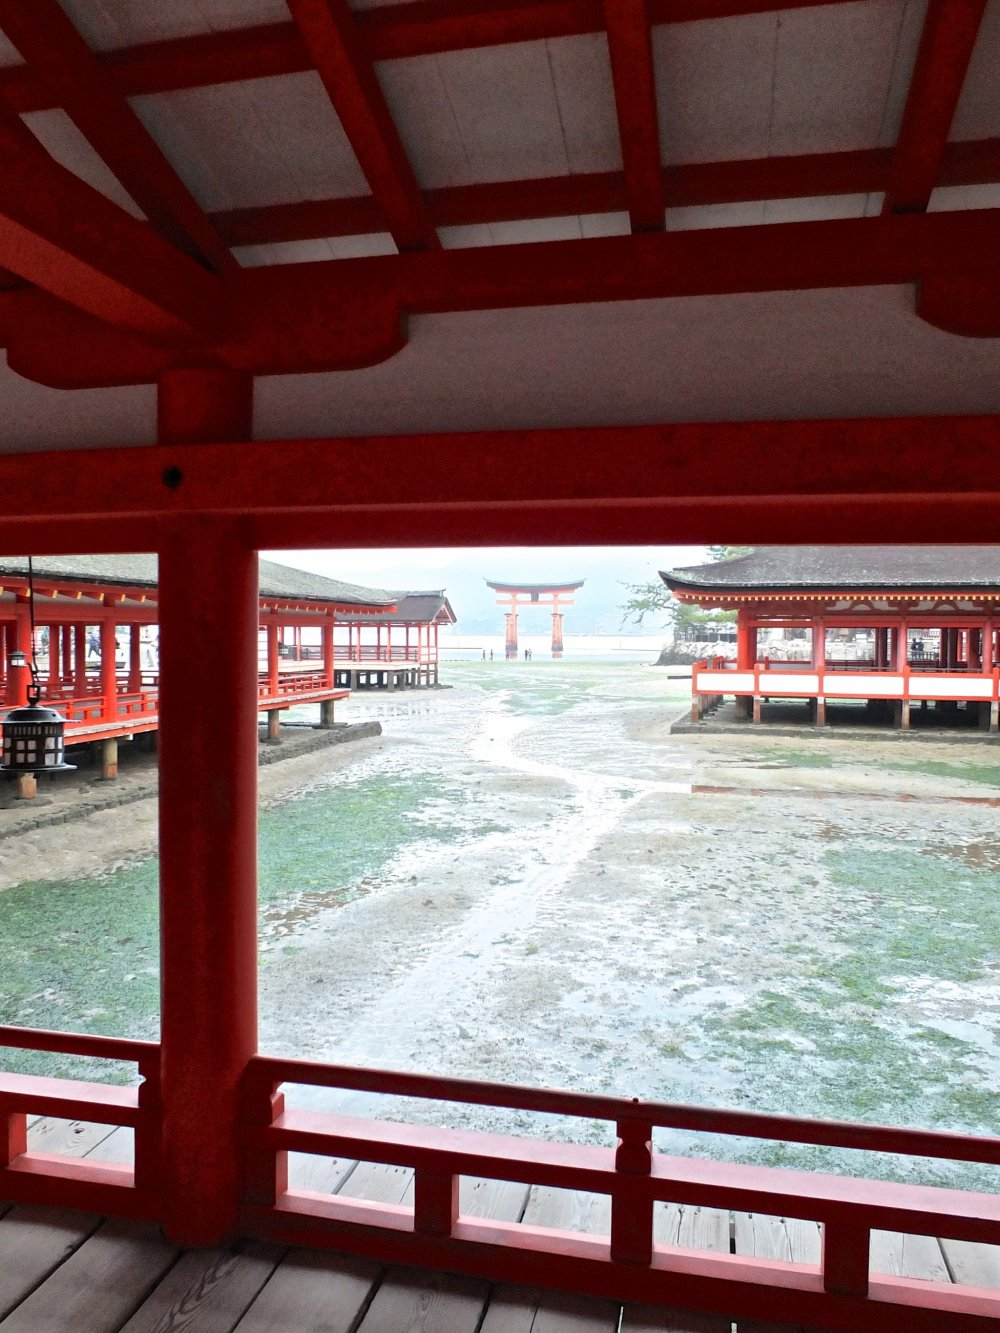 A view of Miyajima's famous torii gate in the far distance